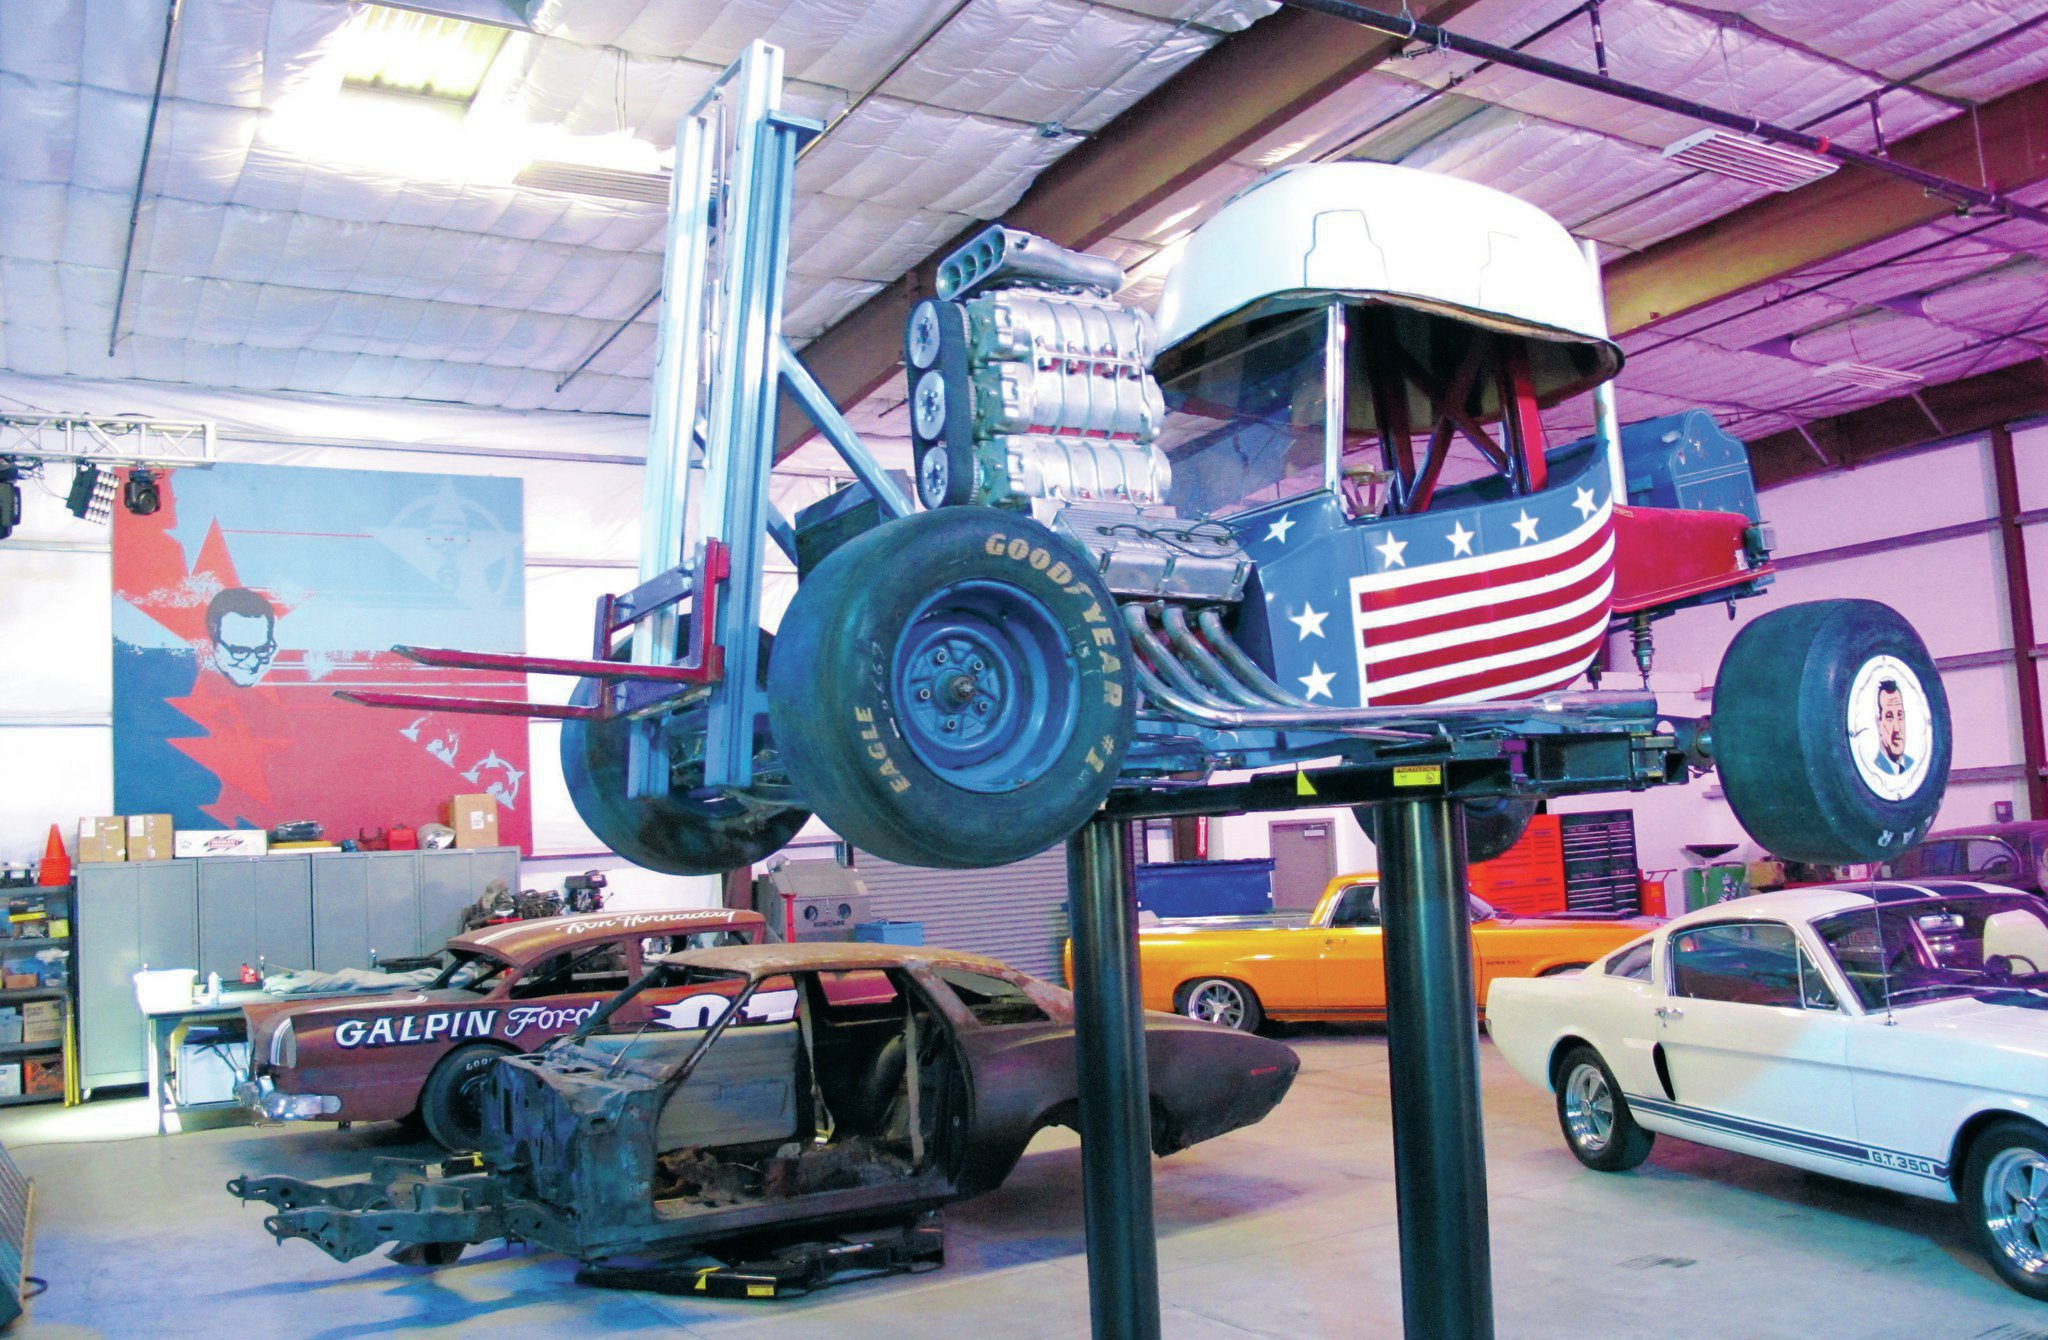 The Hard Hat Hauler, an MPC plastic kit scaled up to 1:1 by Barris and Bob Larivee, was on the rack at Galpin ready for a restoration.